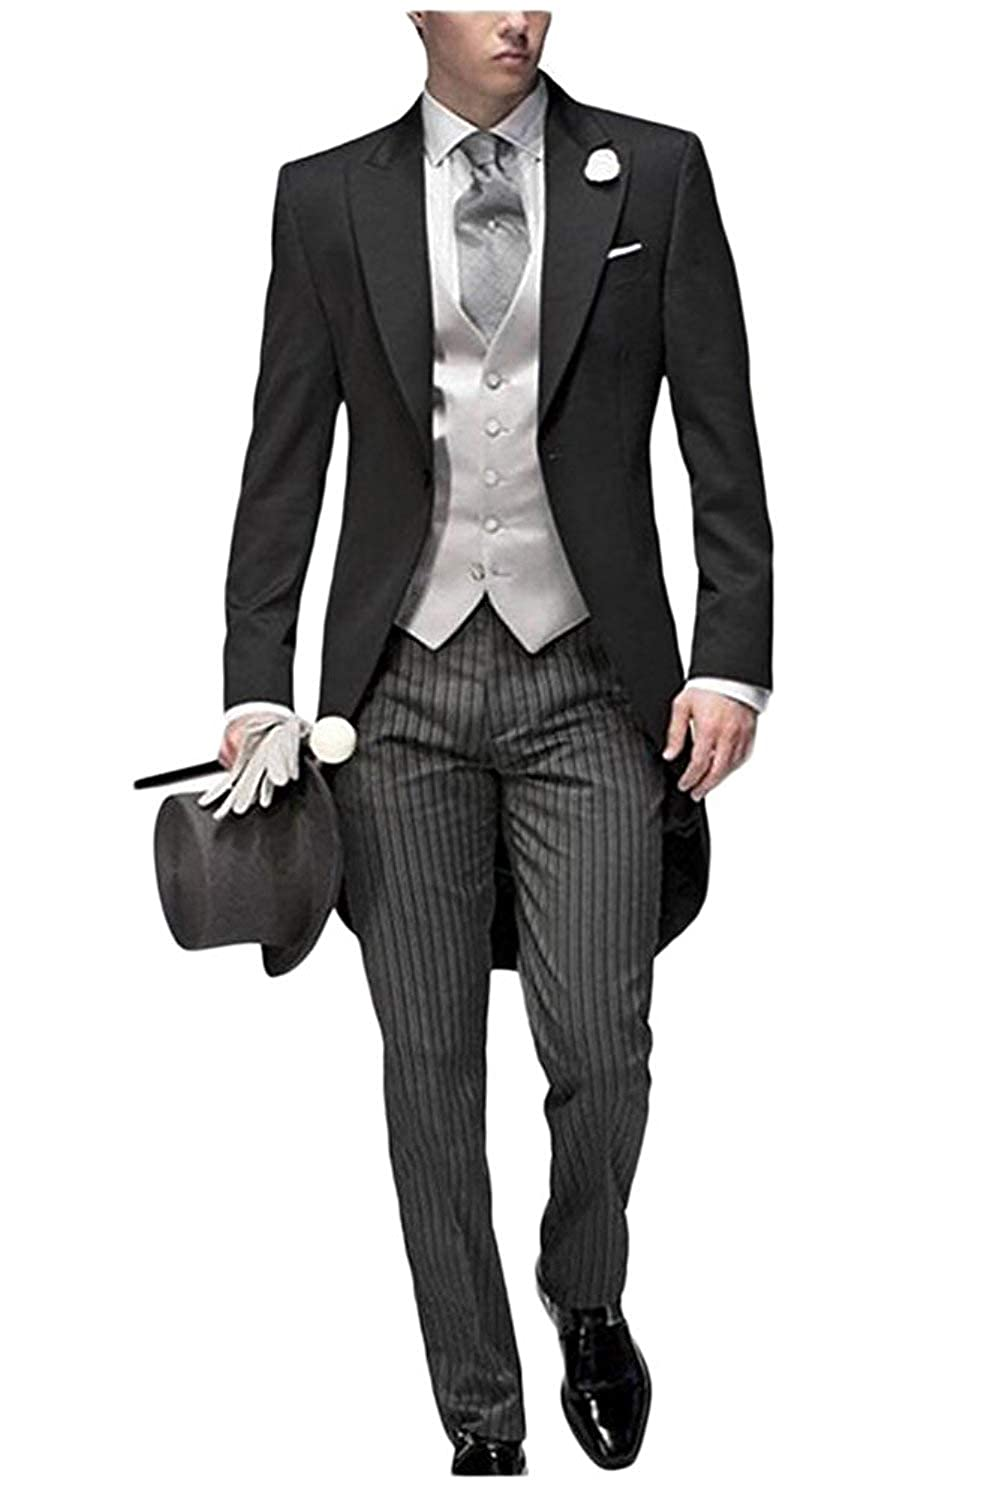 2d675bee JYDress Mens Tail Tuxedo 3 Pieces Tailcoat Suit Gray Groom Tuxedos Wedding  Suit at Amazon Men's Clothing store: